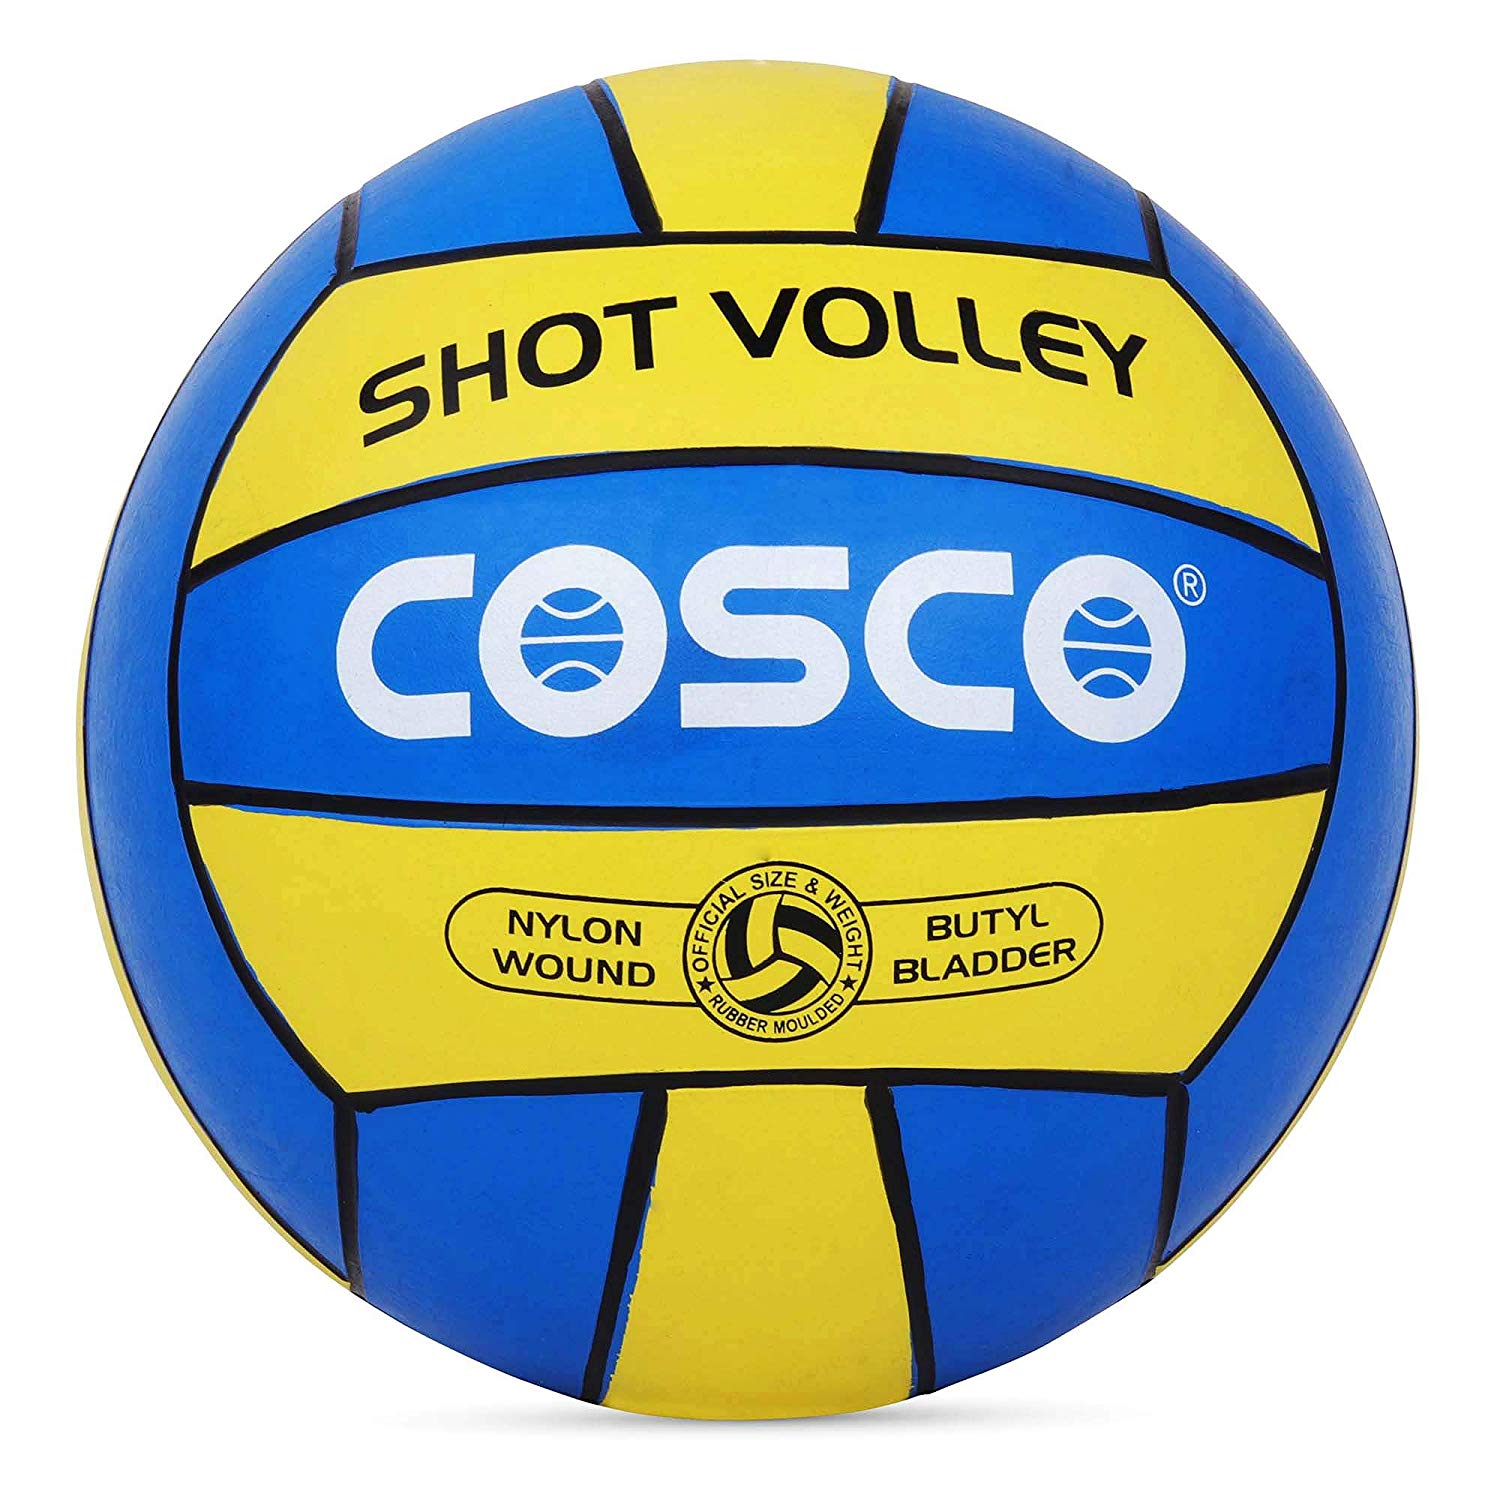 Cosco Shot Volleyball - Size 4 - 18 Panel